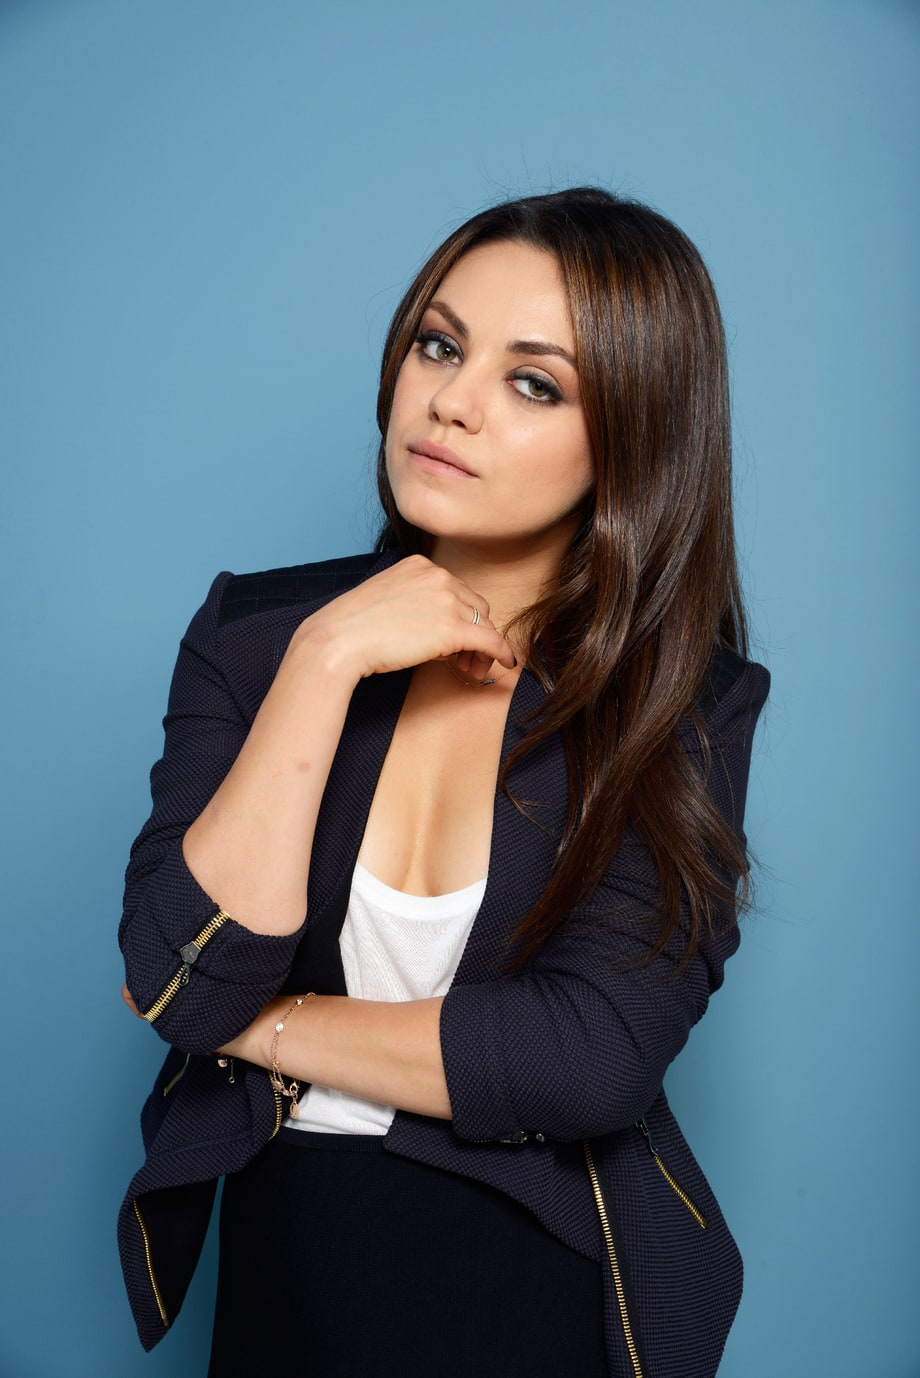 Mila Kunis on Meg Griffin's Most Obscene 'Family Guy ... Mila Kunis